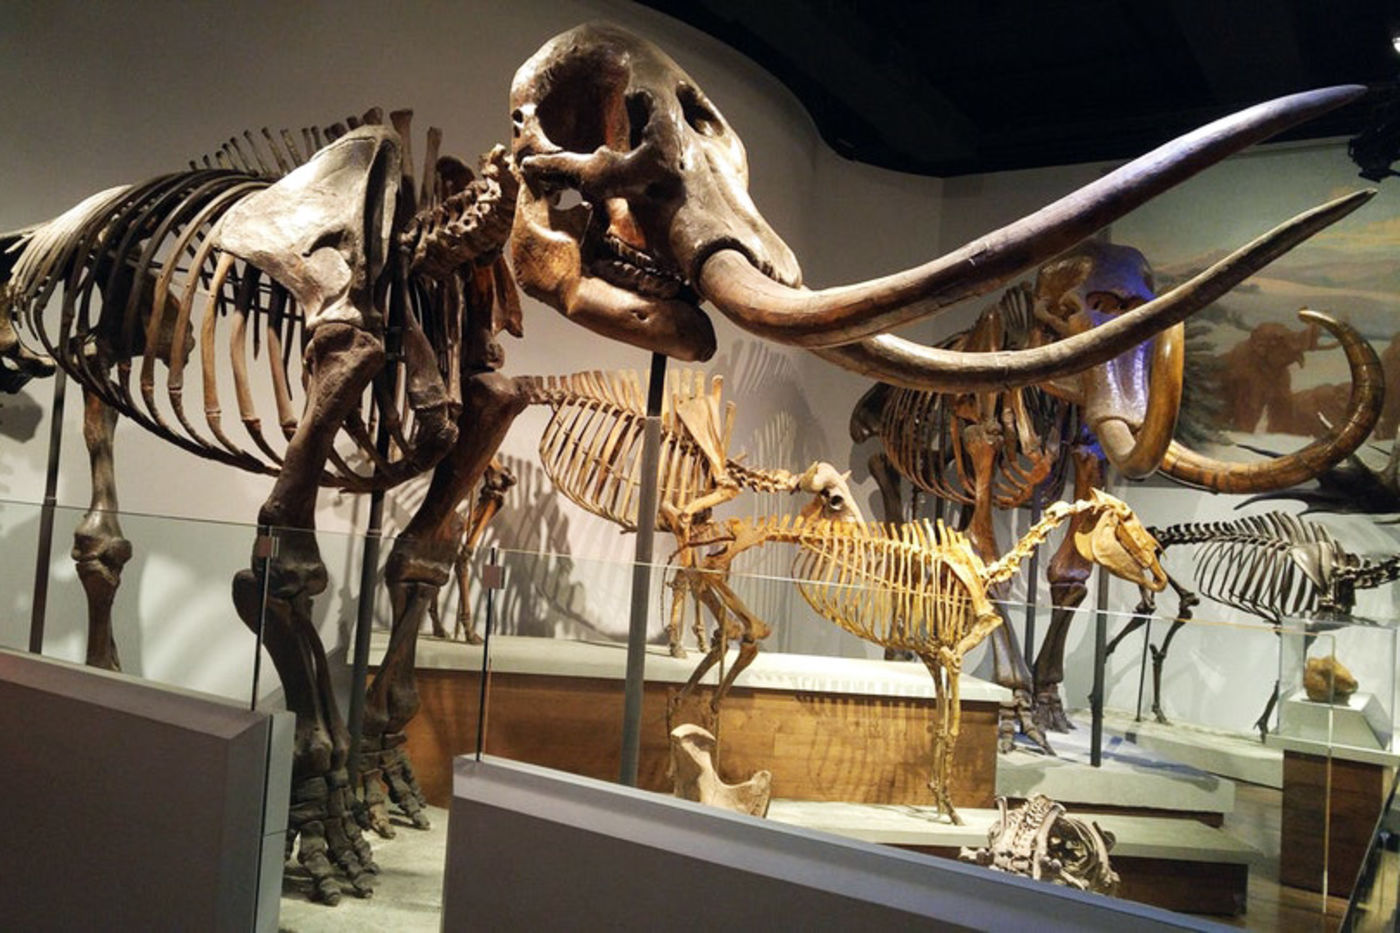 A mastodon skeleton on display in the exhibition Evolving Planet. Behind it are several other animal skeletons, including a woolly mammoth.